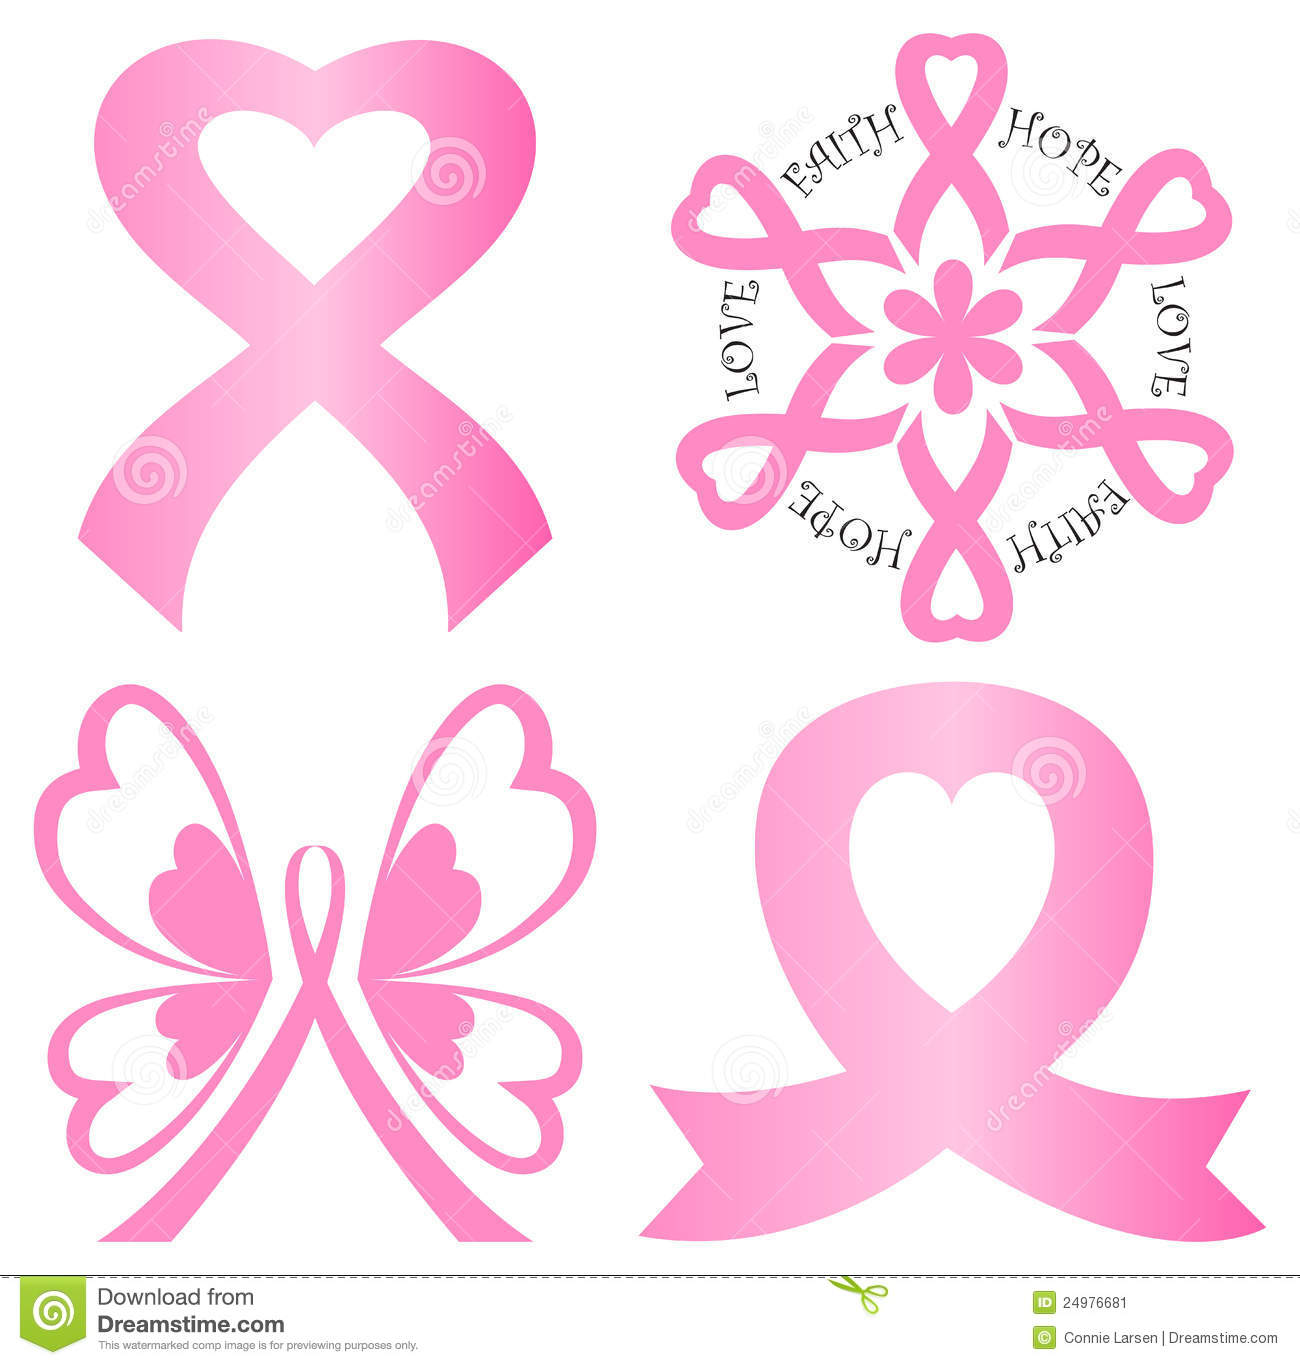 A variety of breast cancer awareness pink ribbon art including a butterfly,  flower and two styles with a heart.